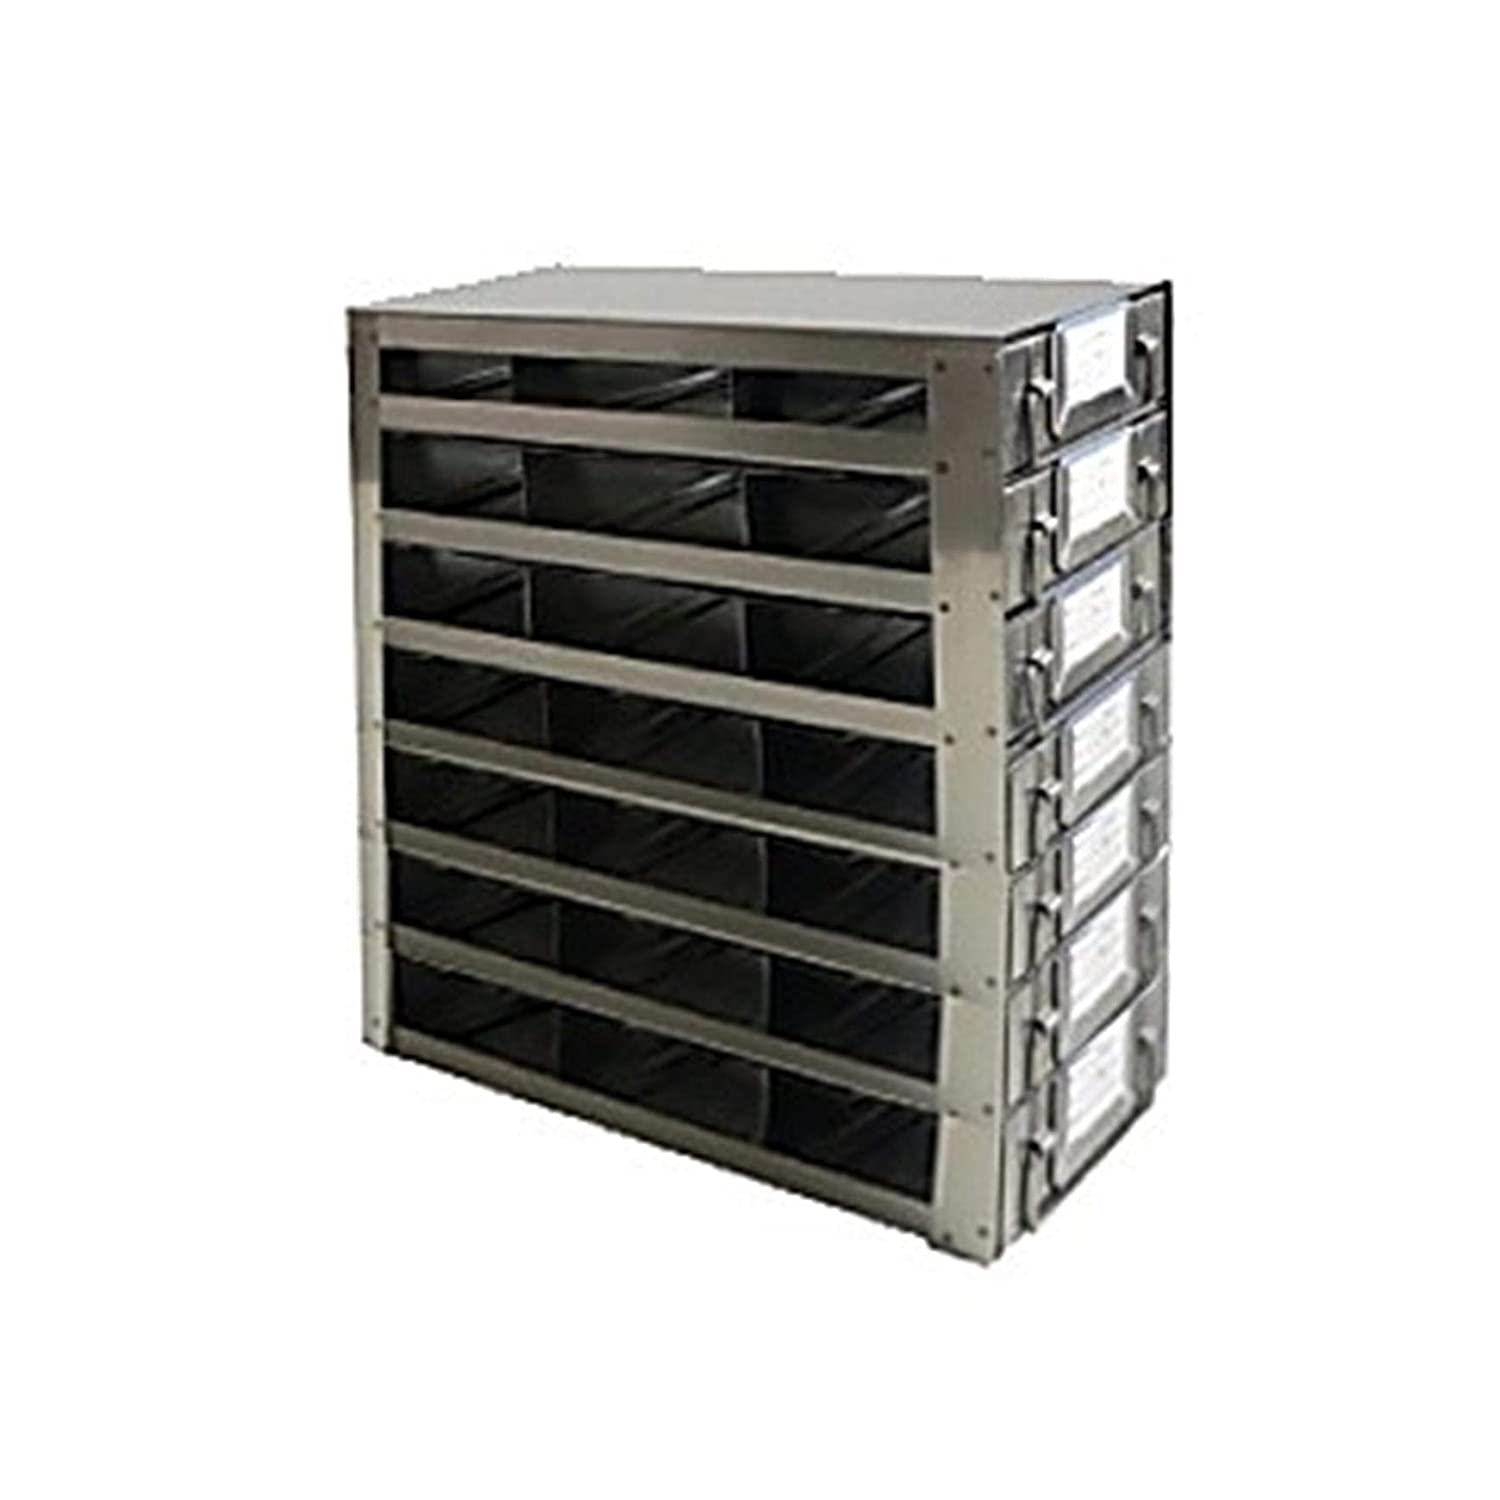 Argos Technologies RDS2537A Upright Freezer Drawer Rack for 25-Place Slide Box, Capacity 21 Box, 11 3/10